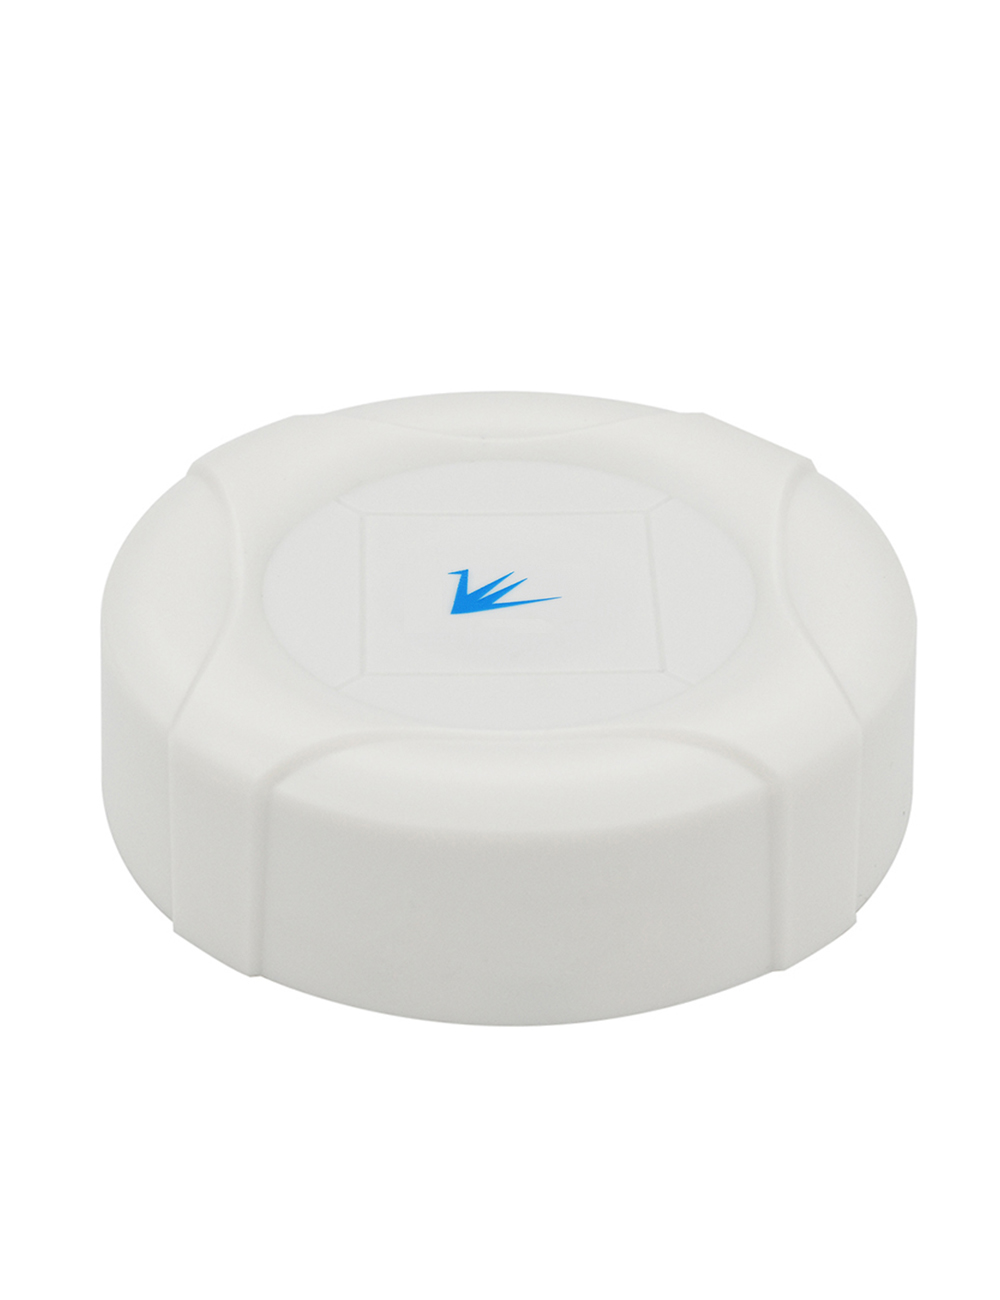 500M Bluetooth 5.0 BLE BEACON IBeacon, Eddystone Support Android, IOS Device For IoT Location